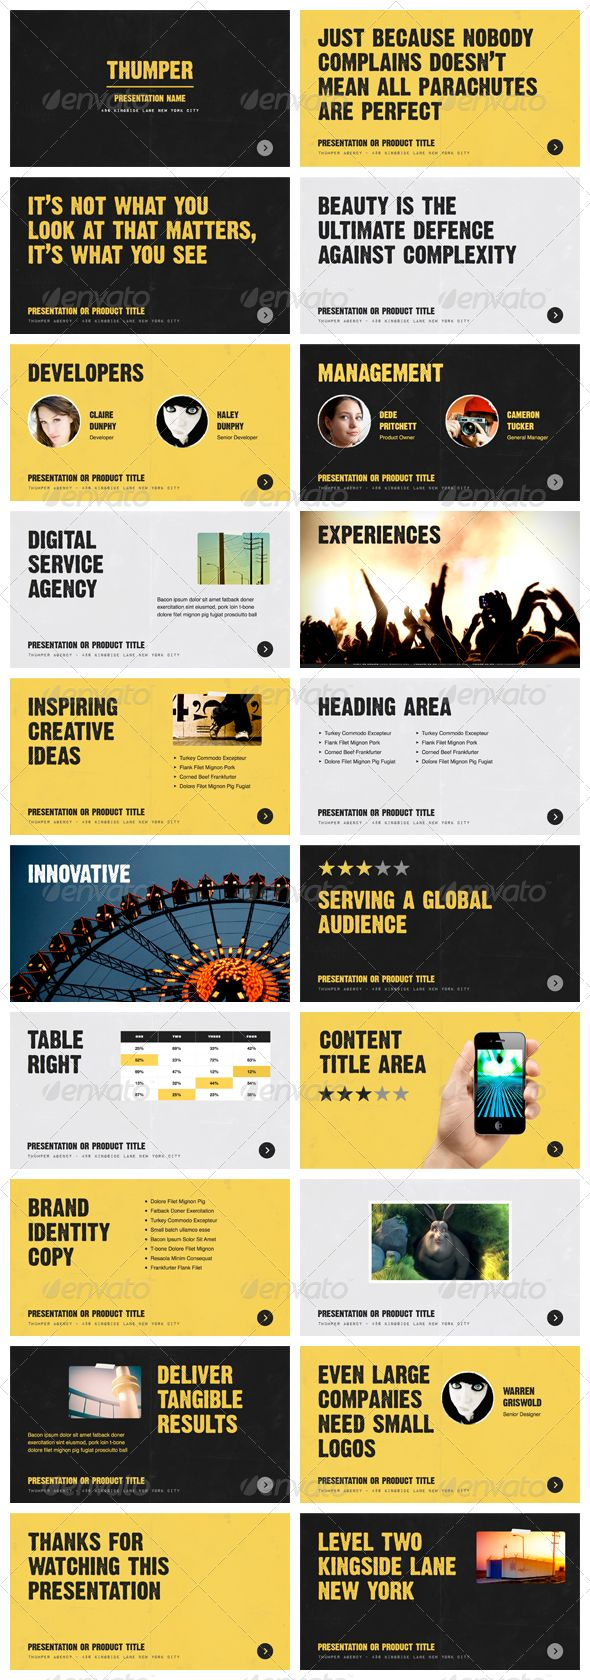 Thumper - Keynote Presentation Template | Keynote theme / template